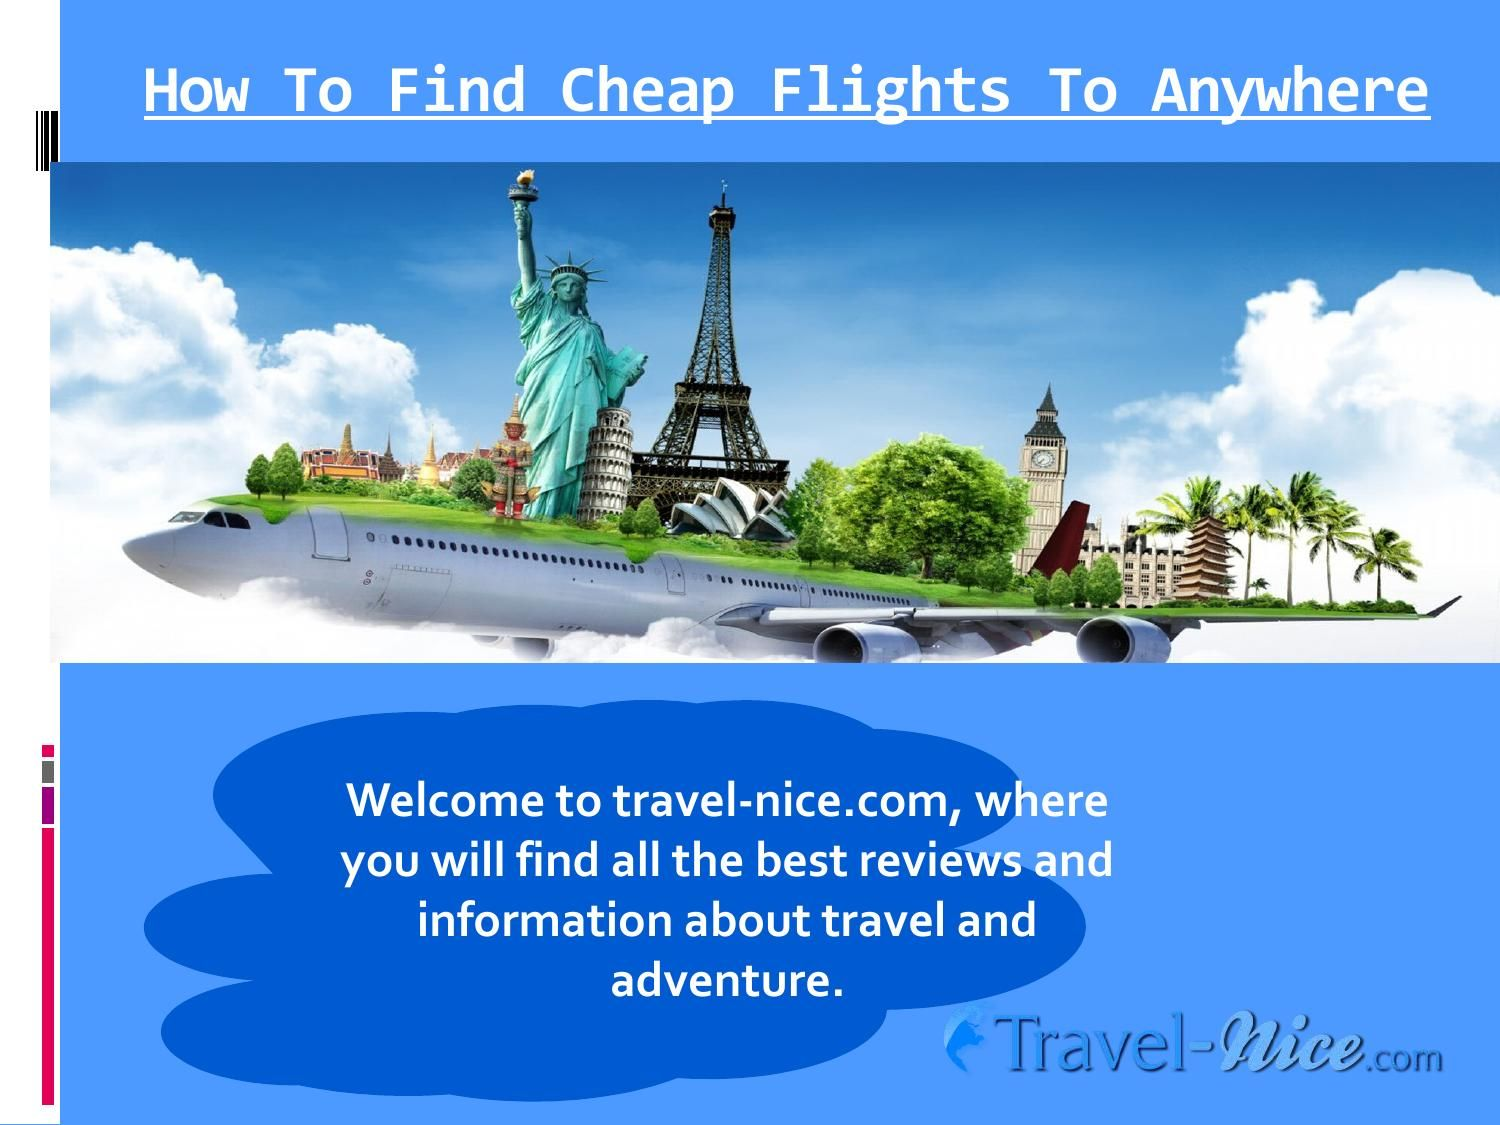 How to find cheap flights to anywhere  Travel nursing